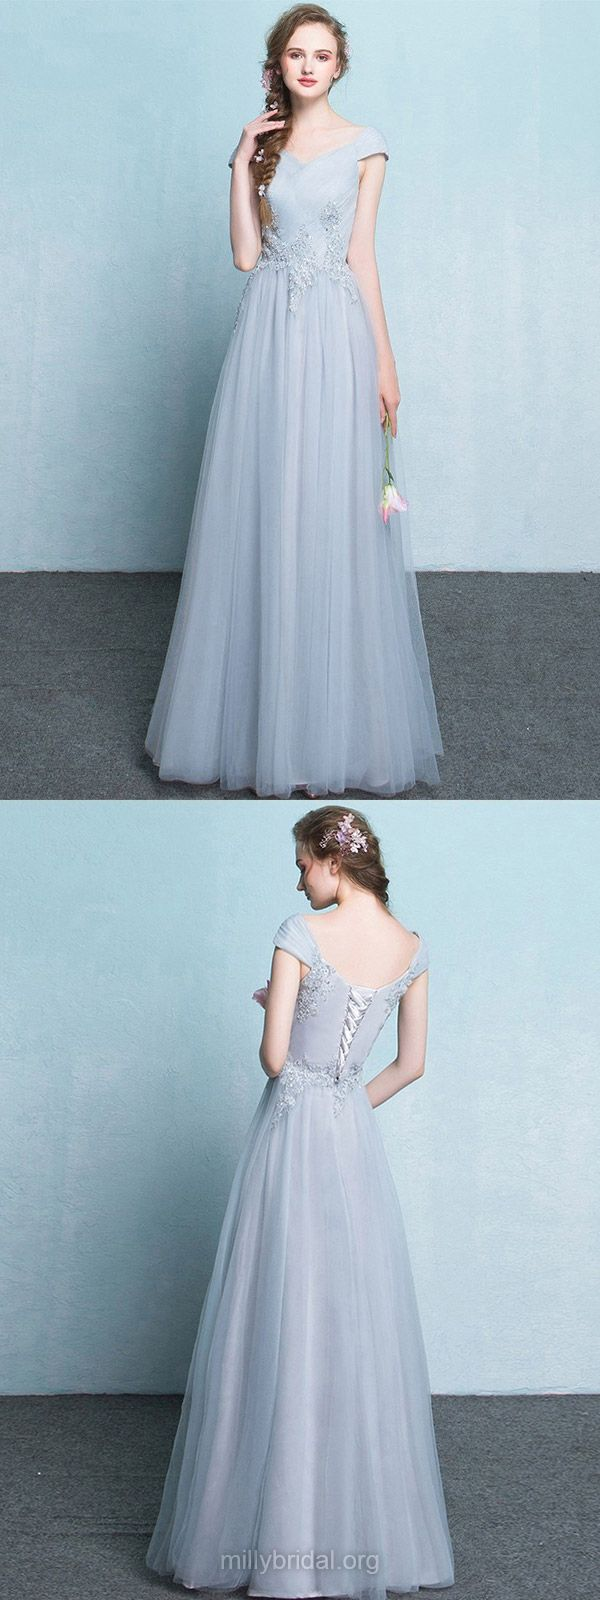 Lace Bridesmaid Dresses Long, Silver Bridesmaid Dresses 2018, Grey Bridesmaid Dresses A-line, V-neck Bridesmaid Dresses Tulle with Appliques